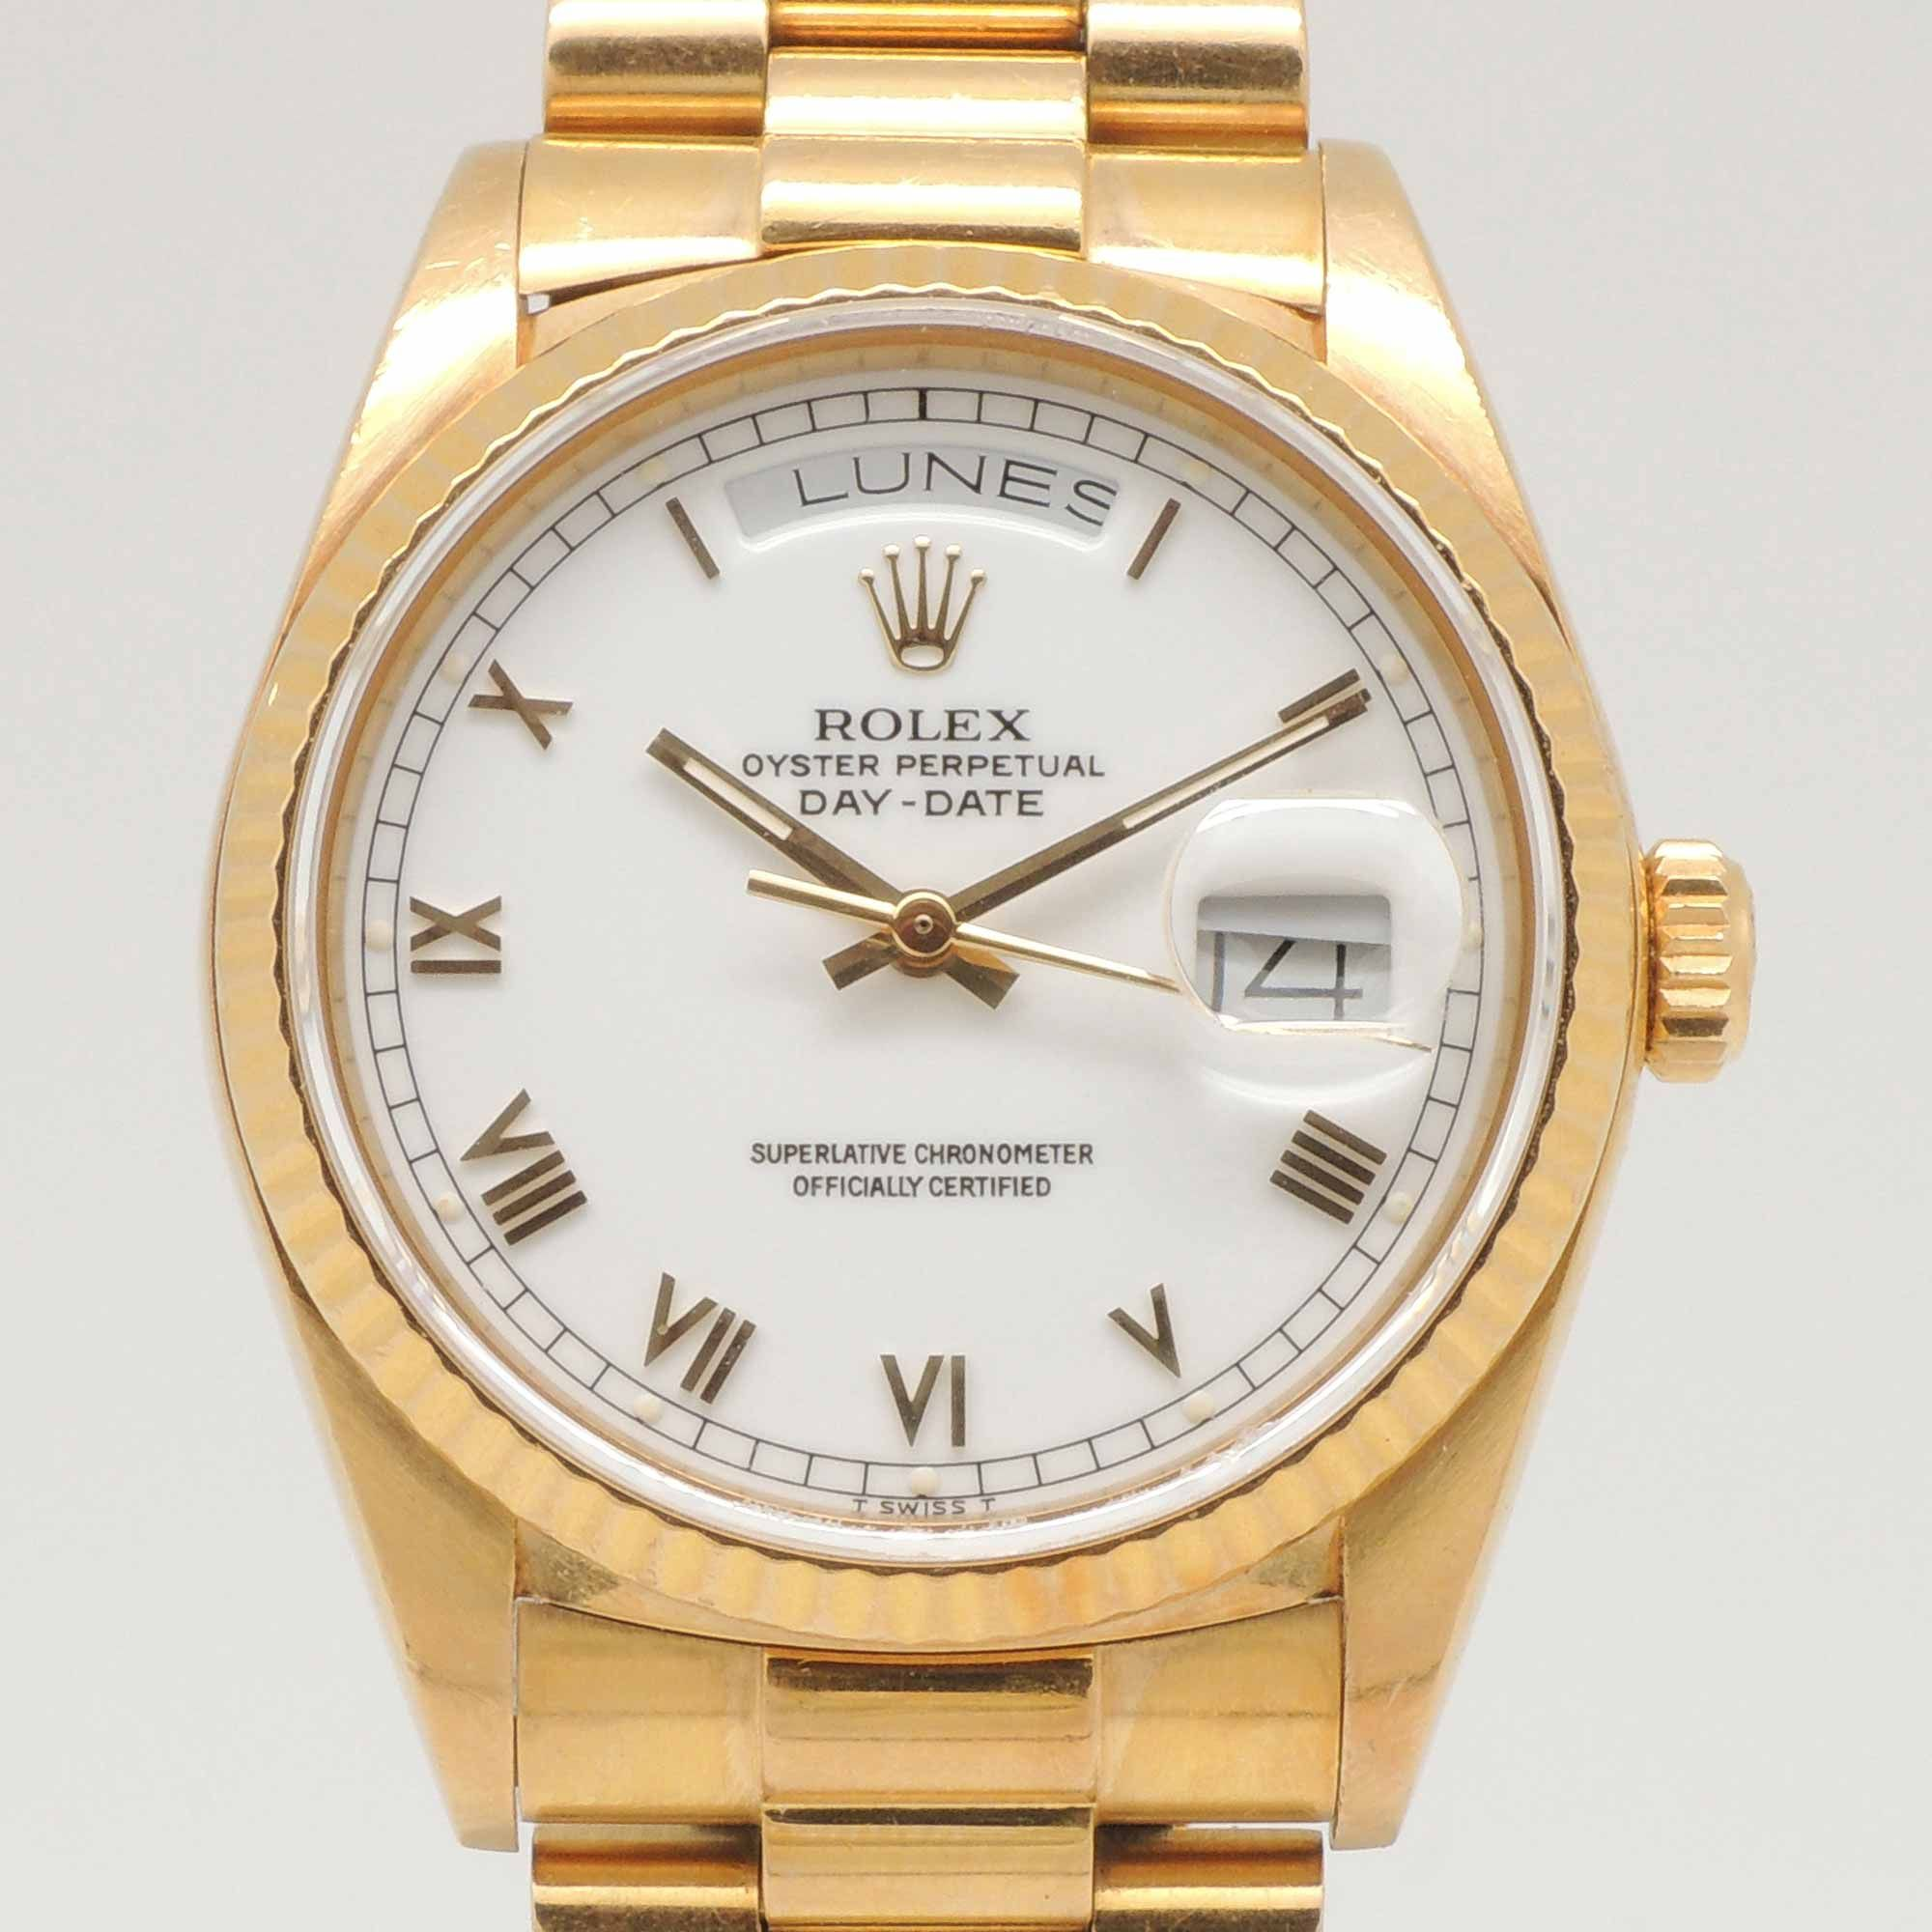 Ancienne Vintage Gallery Rolex Watches Rolex Day Date Watches For Men